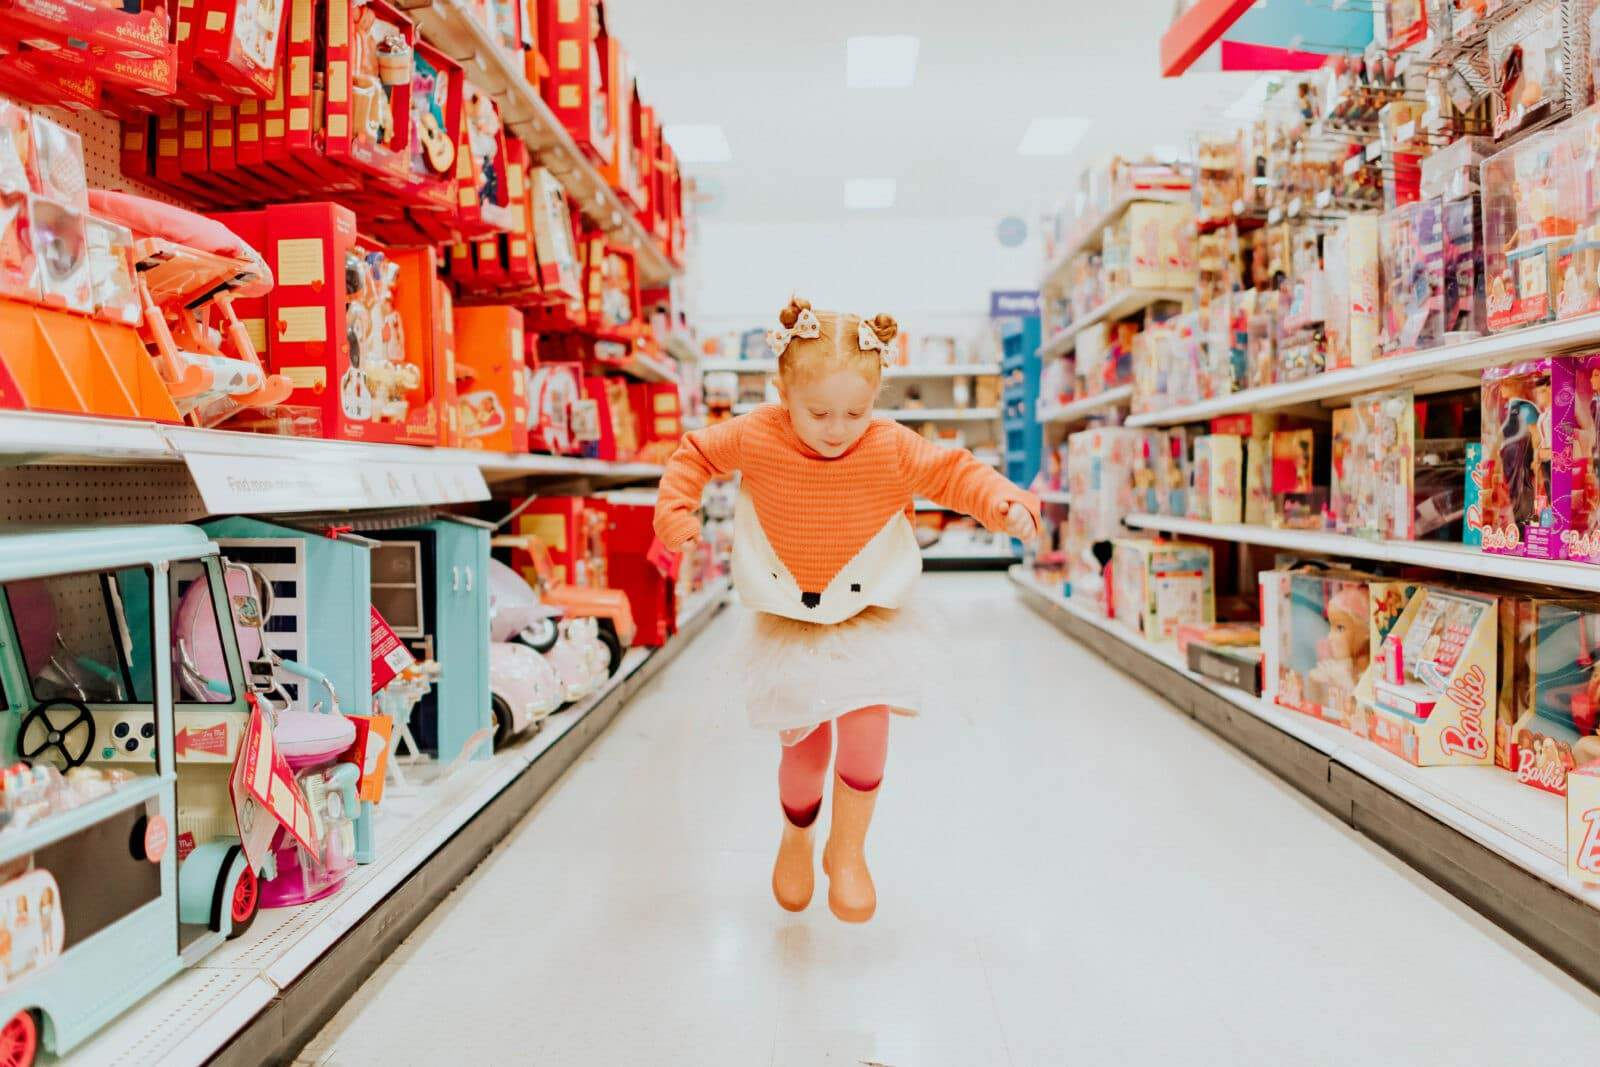 SKIPPING FOR JOY DOWN THE TOY ISLE…